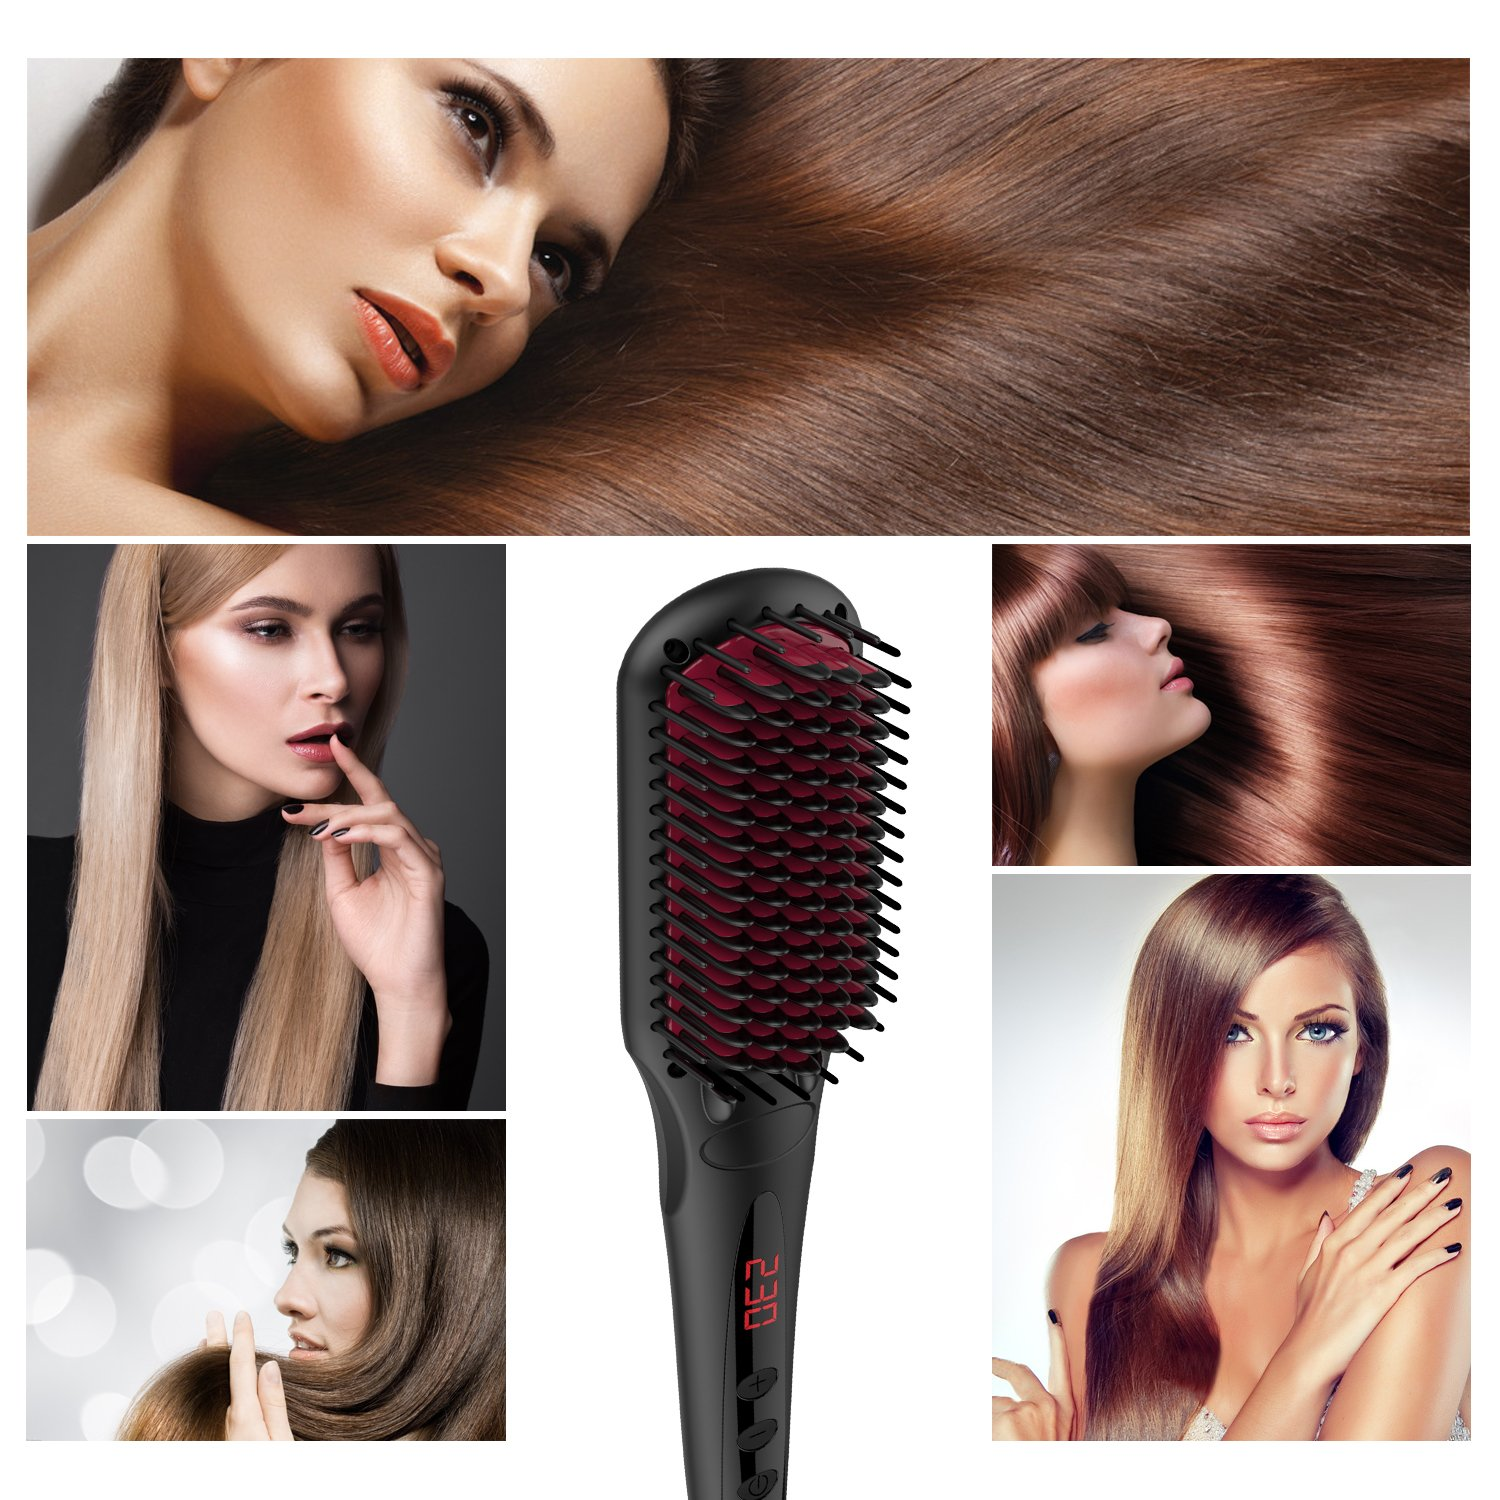 Enhanced Hair Straightener Brush by MiroPure, 2-in-1 Ionic Straightening Brush with Anti-Scald Feature, Auto Temperature Lock and Auto-off Function (Black) by MiroPure (Image #6)